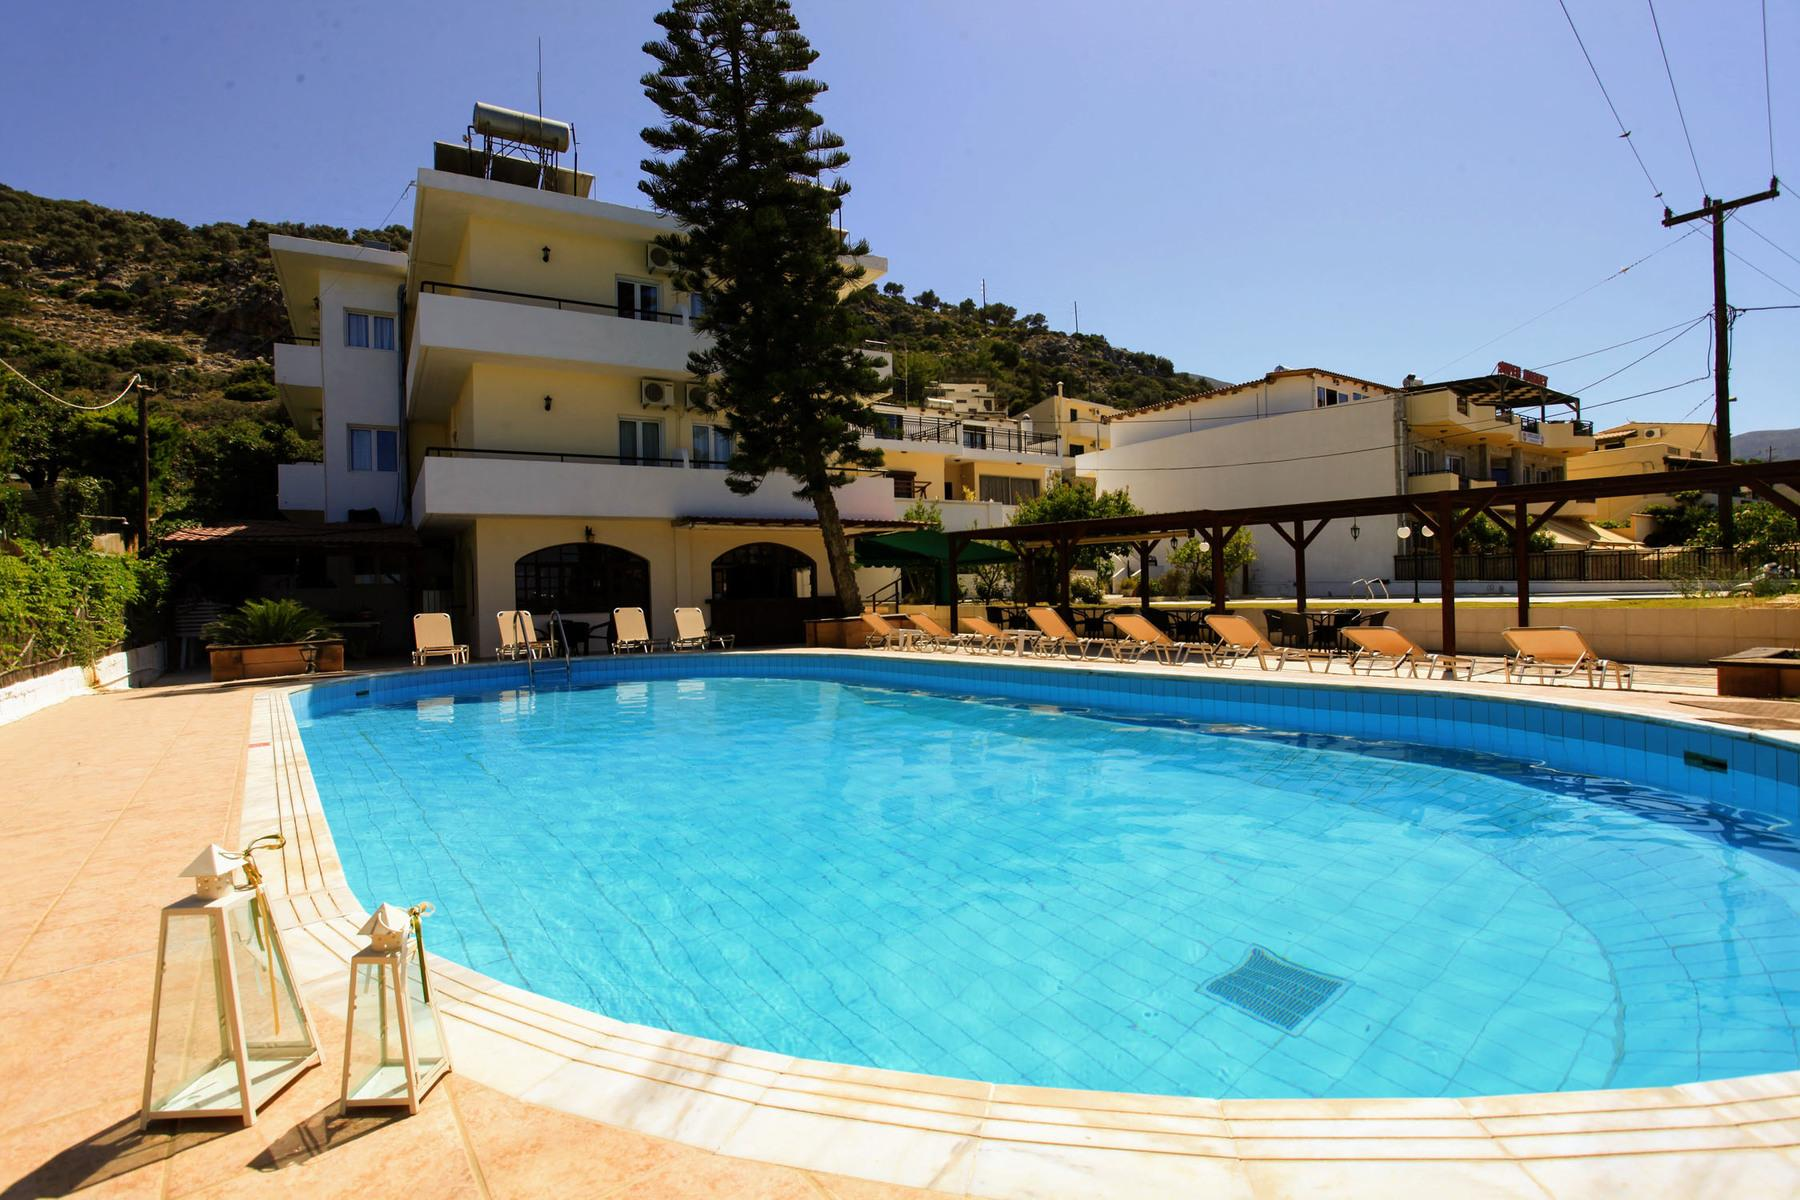 Iraklis Apartments in Stalis, Crete, Greek Islands